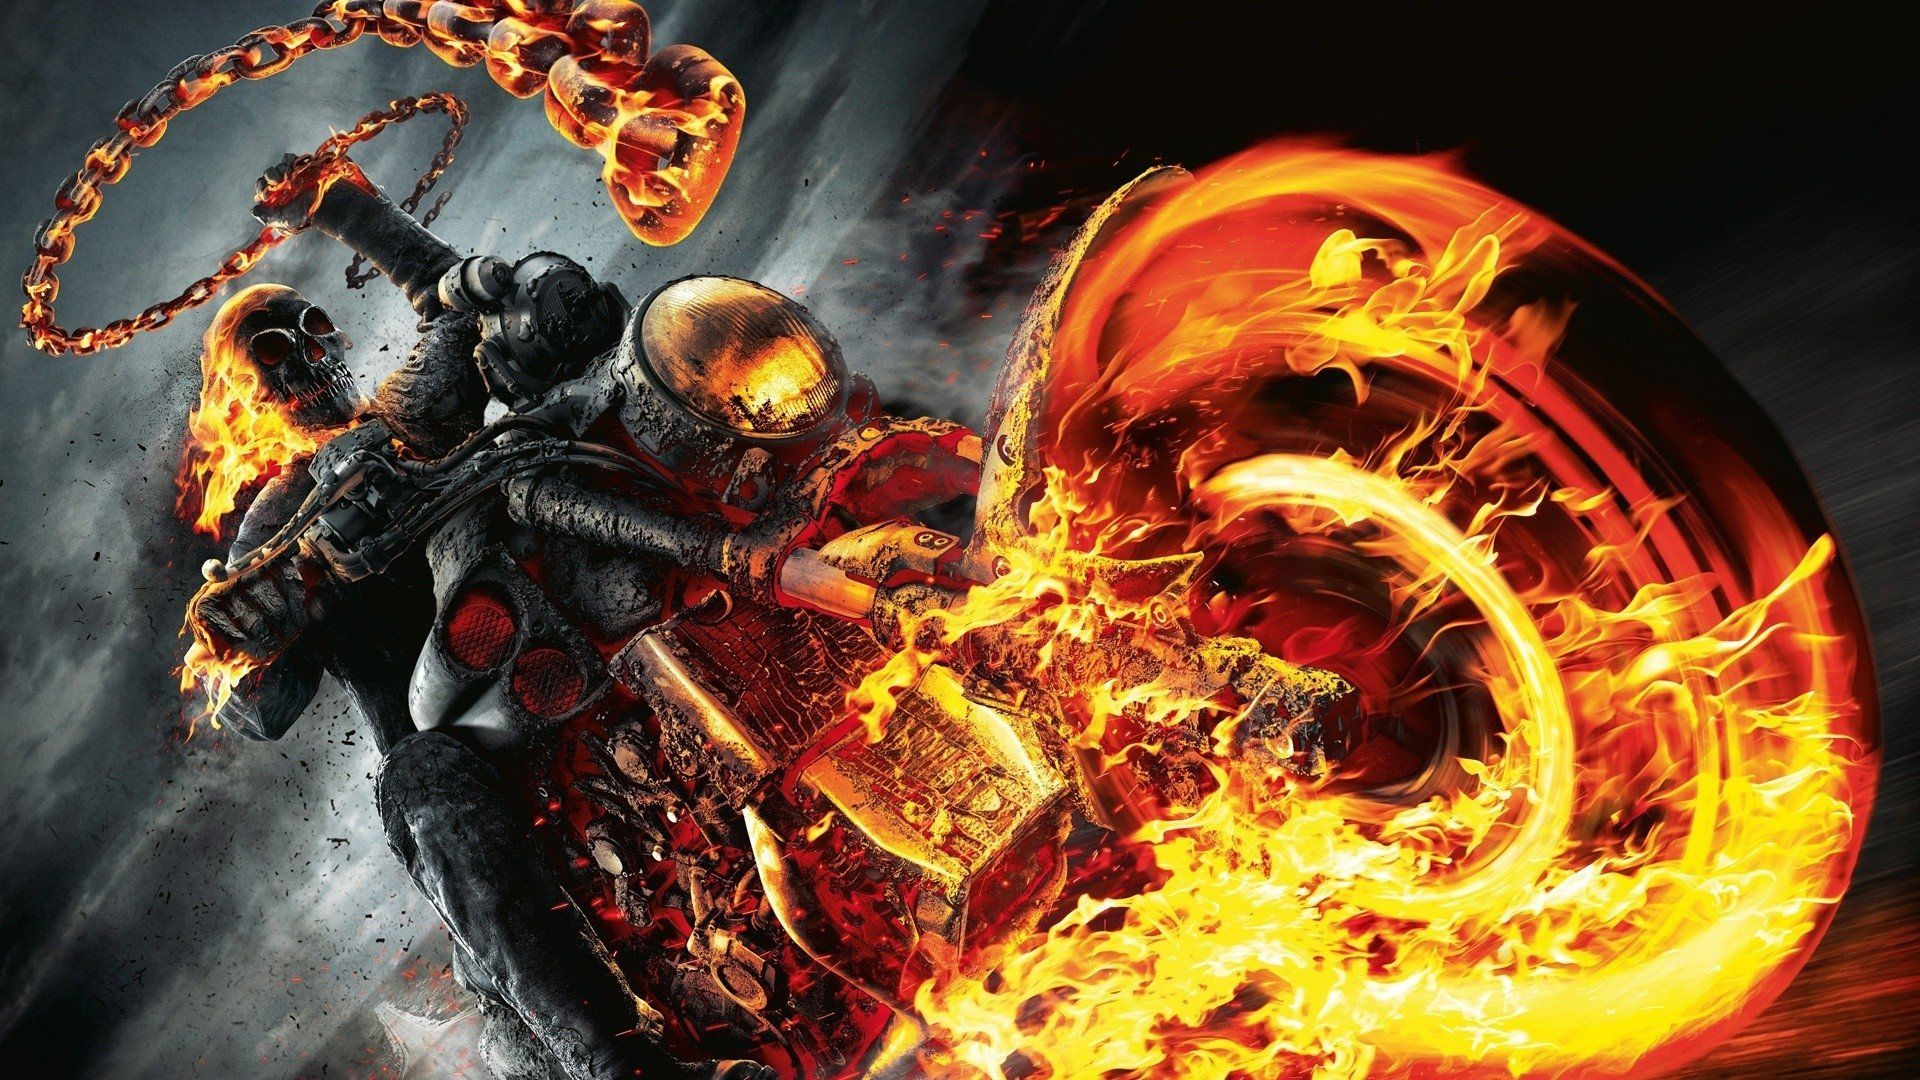 1920x1080 141 Ghost Rider HD Wallpapers | Background Images - Wallpaper Abyss